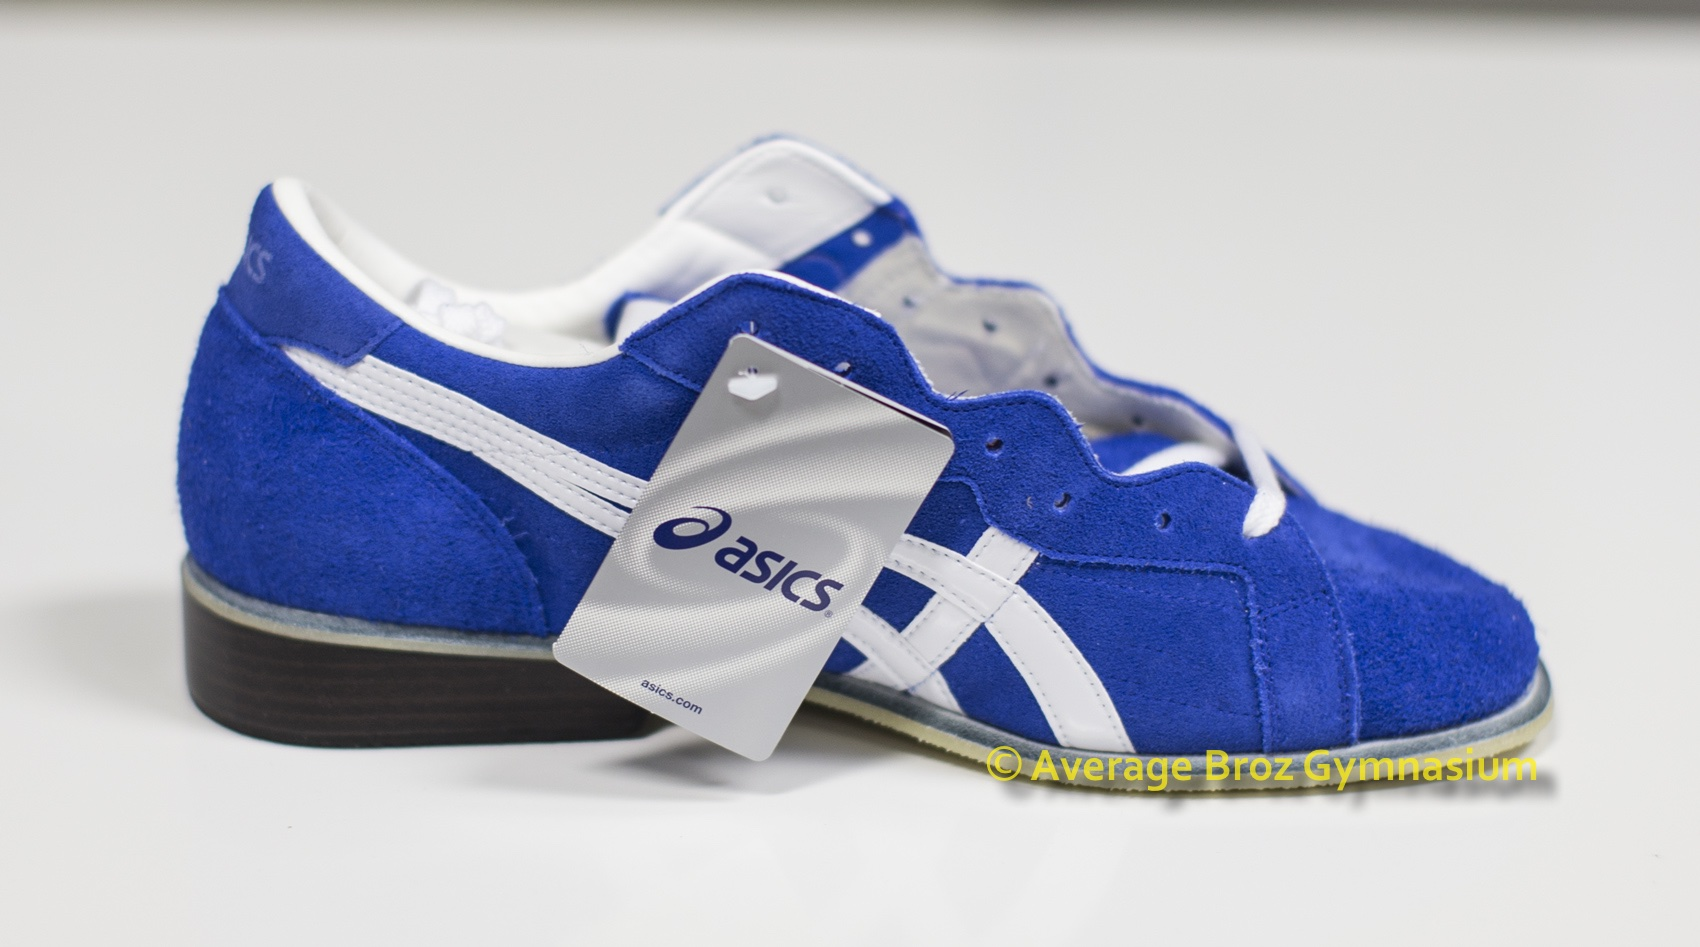 Risto Weightlifting Shoes For Sale